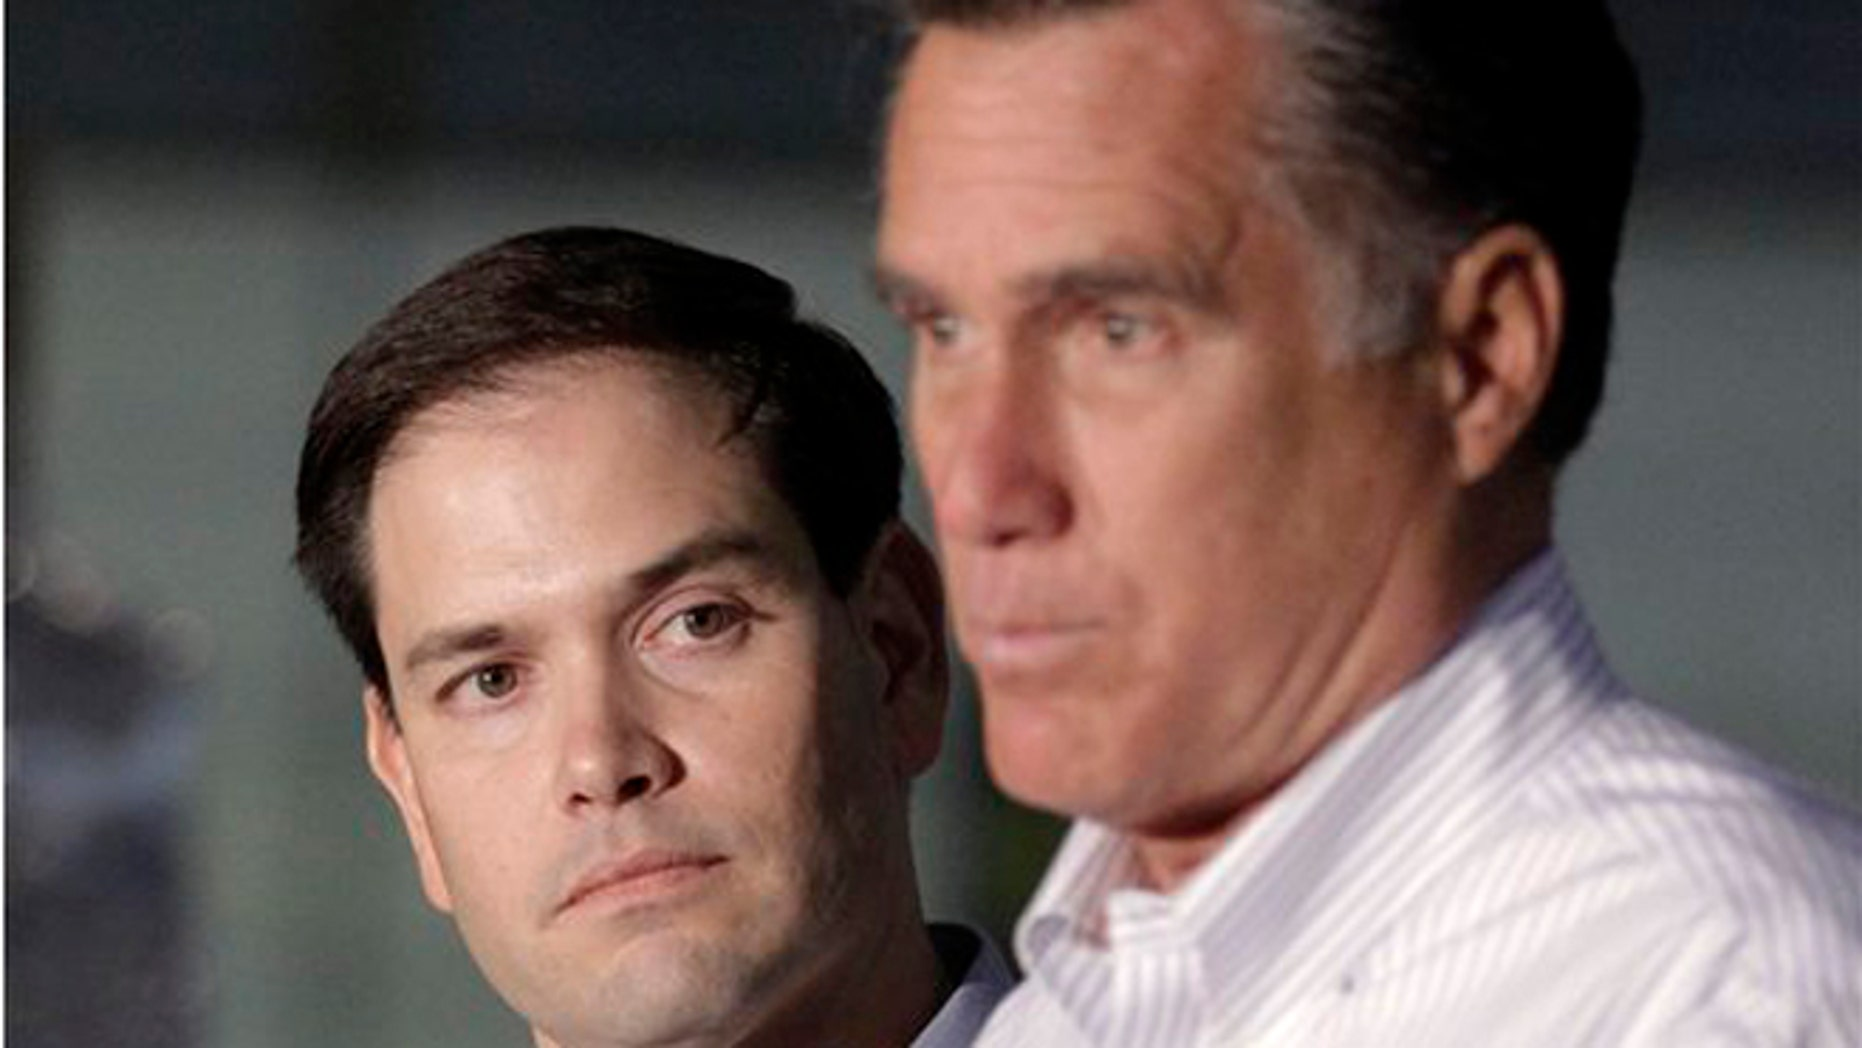 2012: Sen. Marco Rubio, R-Fla. listens at left as GOP presidential candidate Mitt Romney speaks in Aston, Pa.